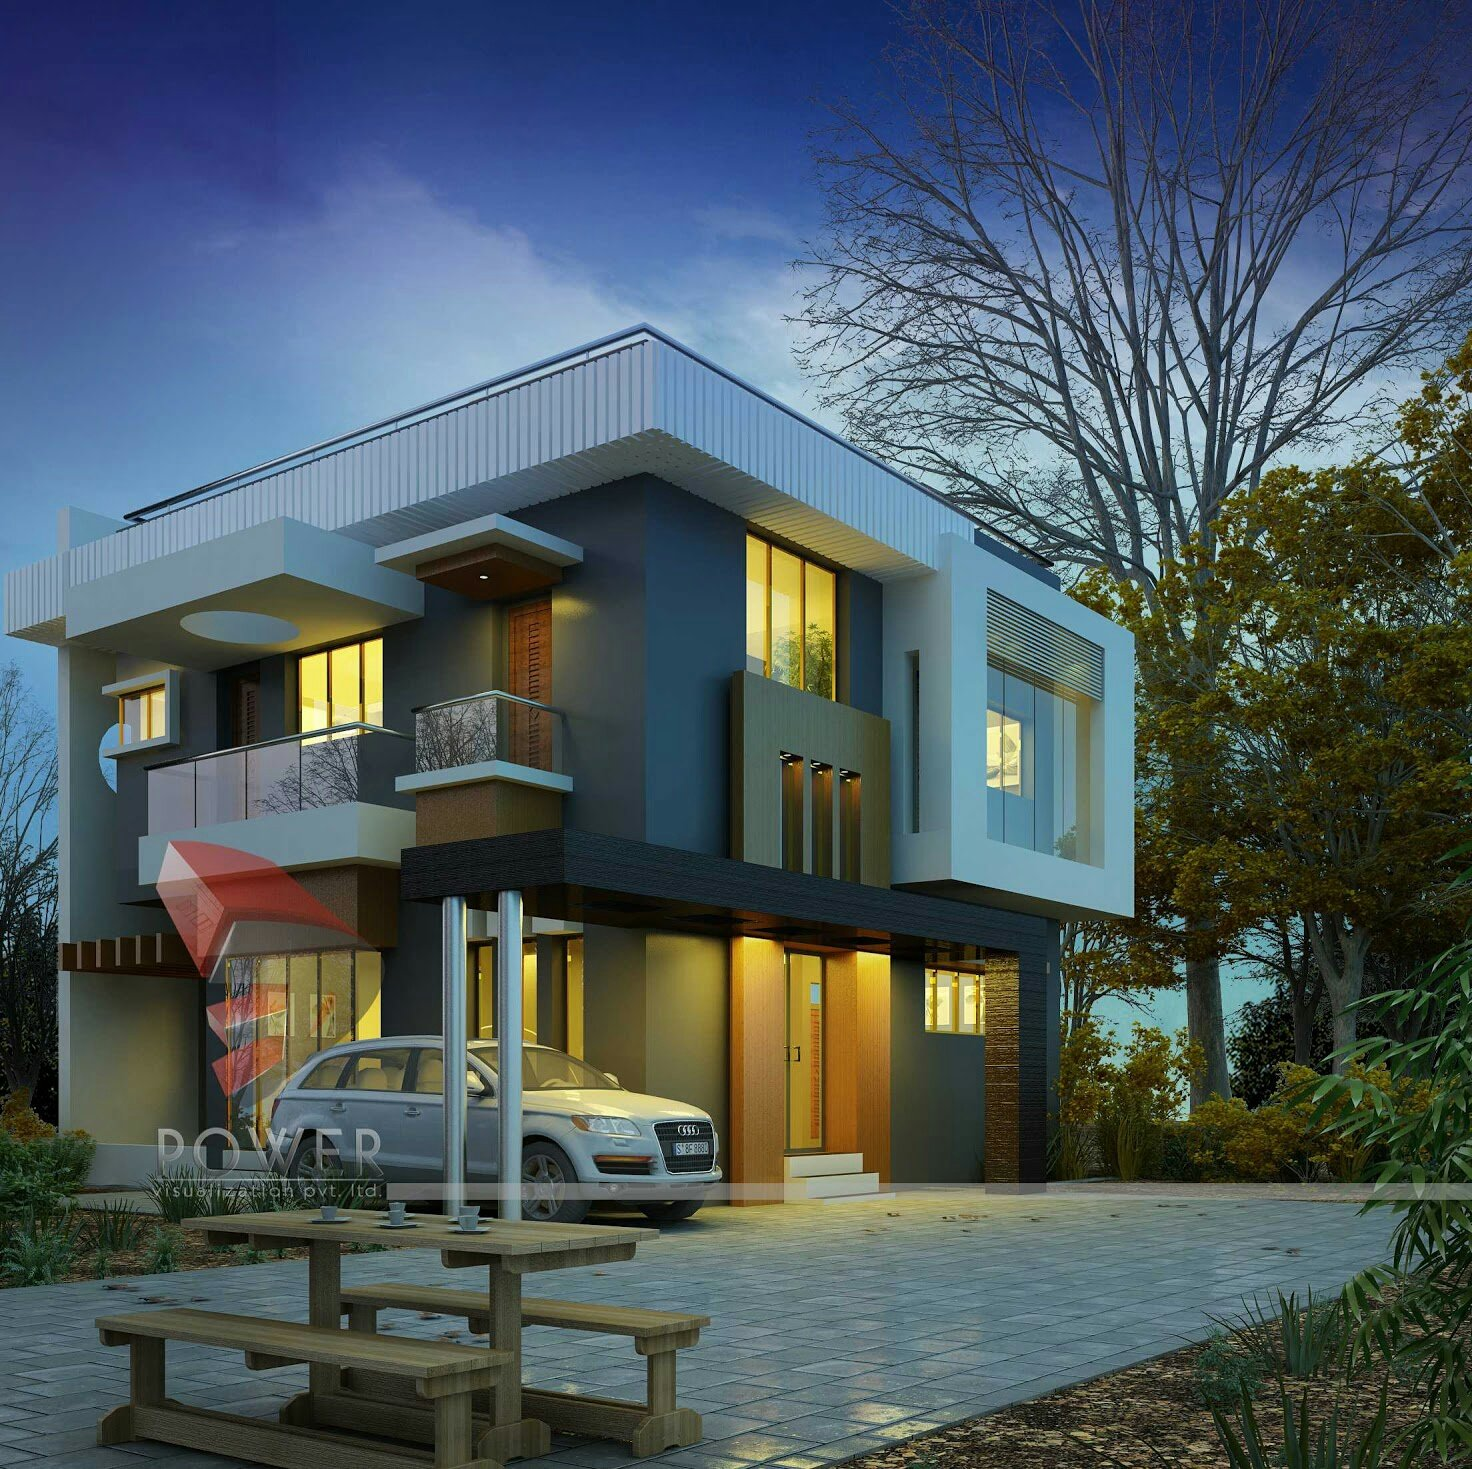 residential transnet home group - HD1600×1469